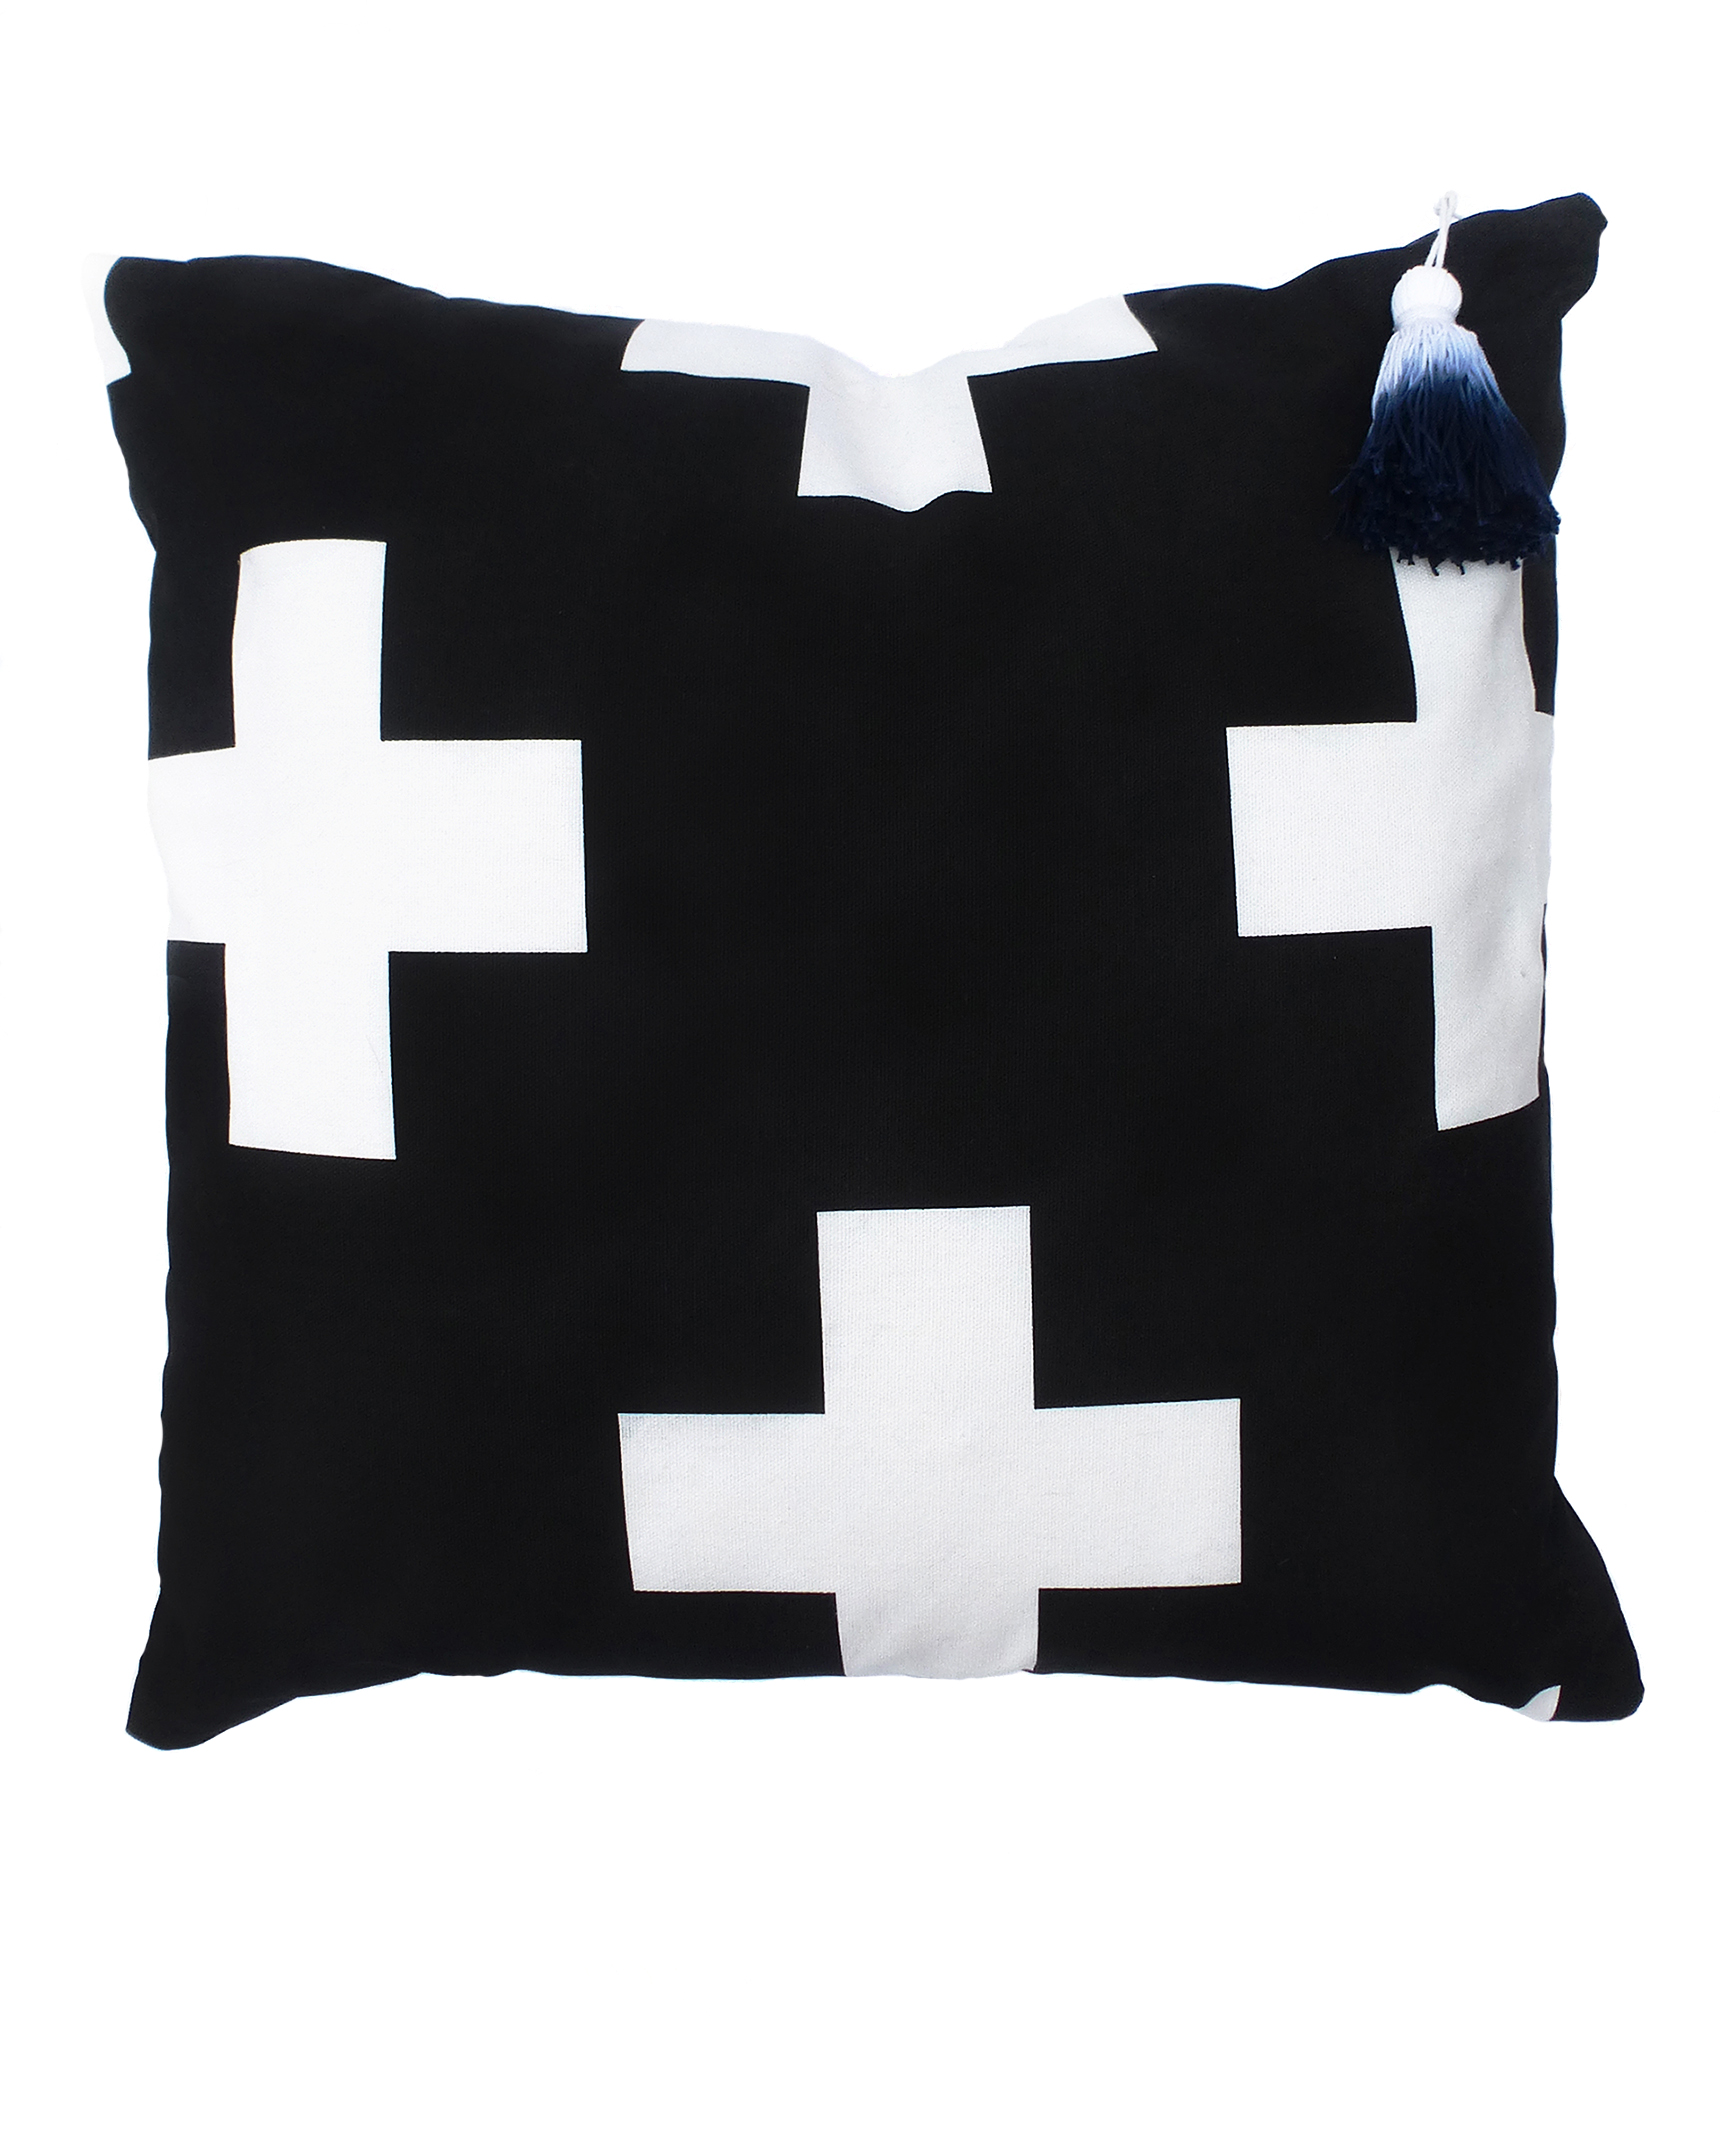 Ebb&Flow_Pillowcover_La Cruz_$56.jpg